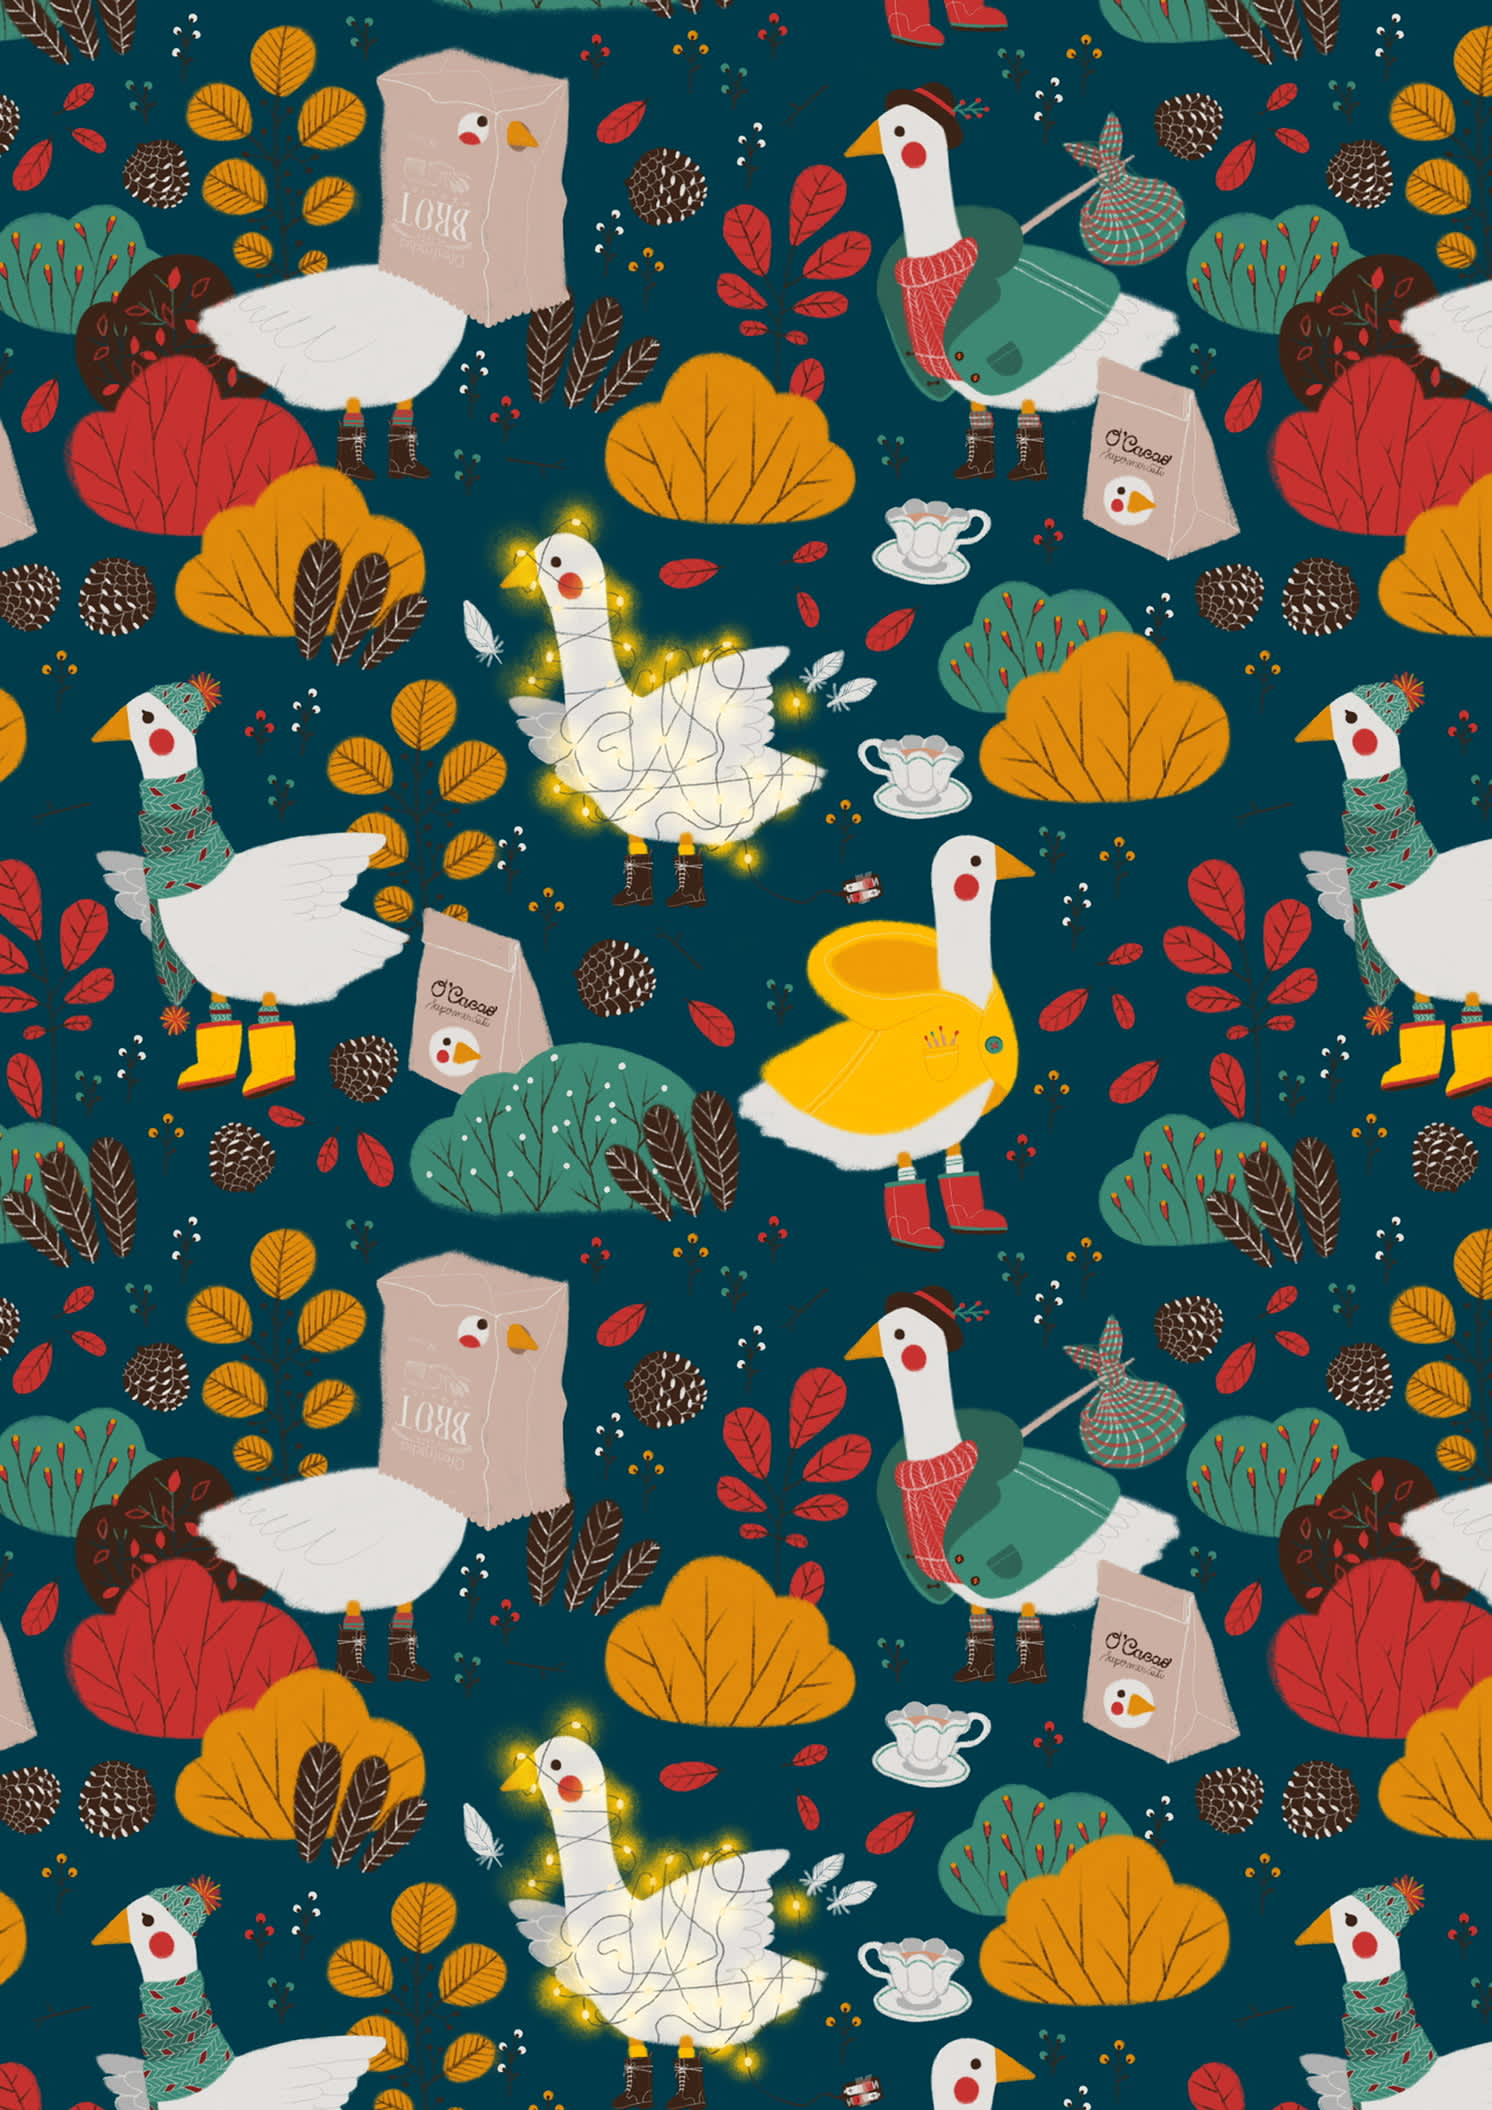 Silly goose pattern